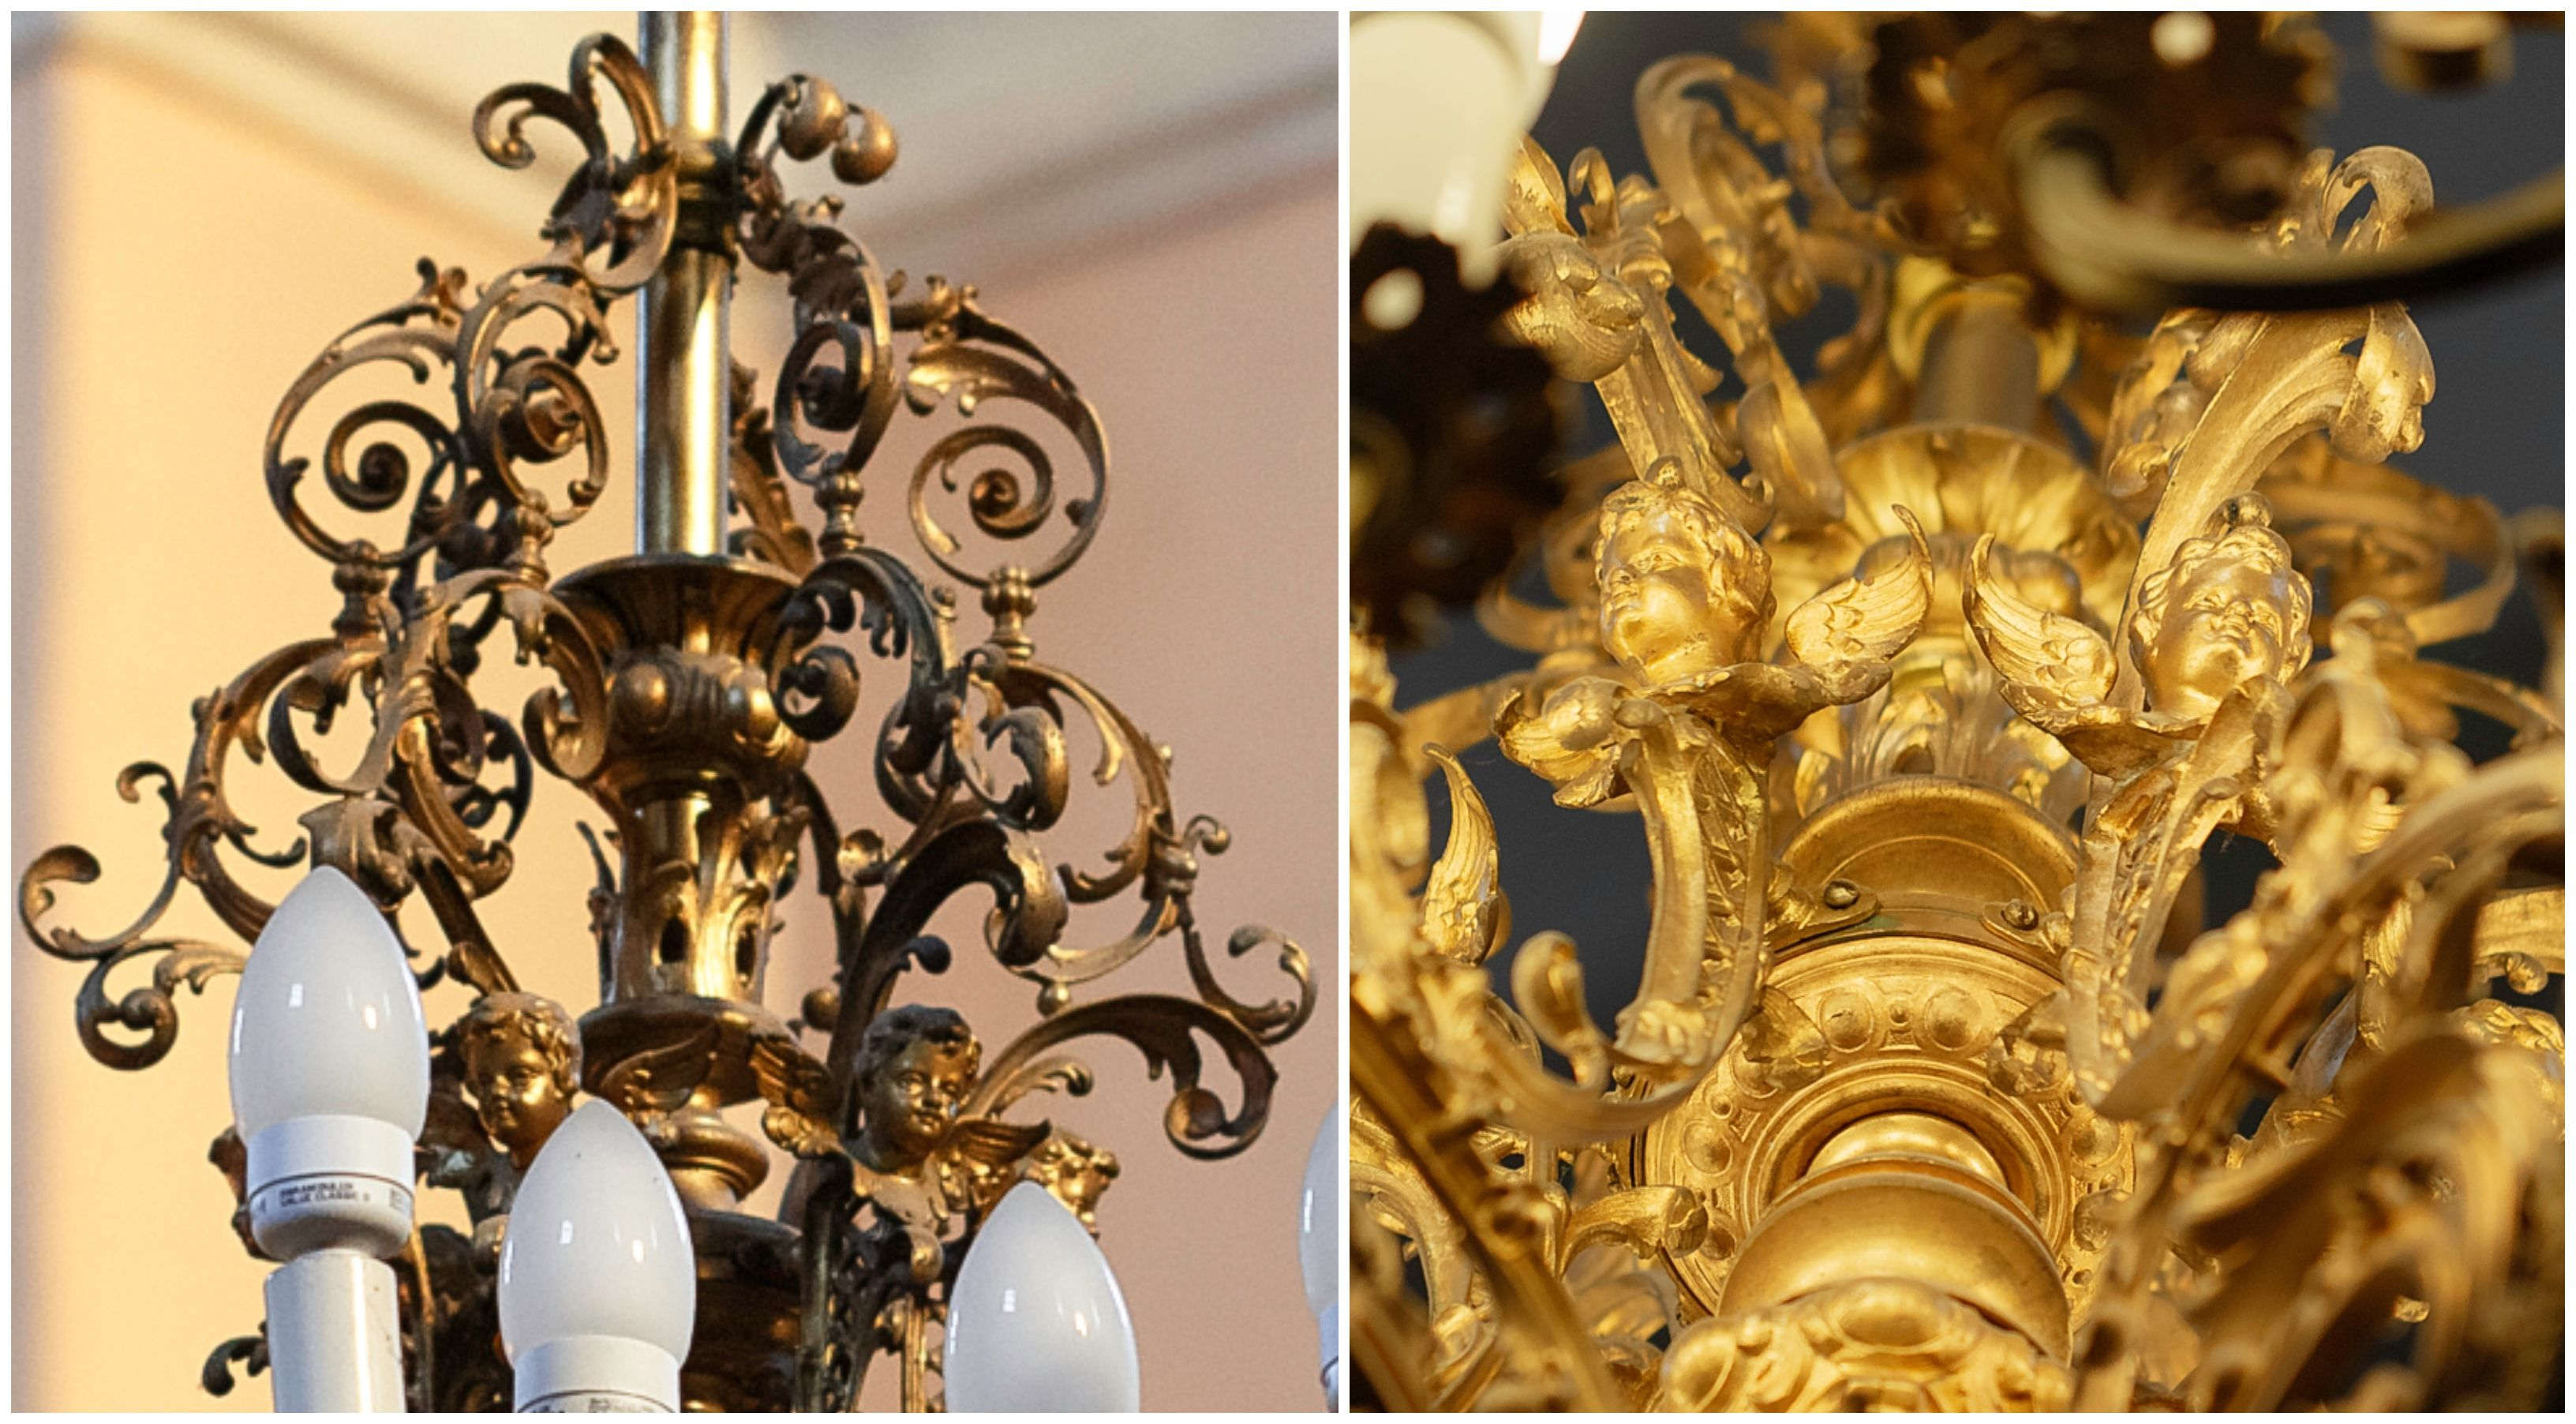 A fragment of the chandelier, the 1880s–1890s, the church of the Holy Cross (Carmelitian) in Kaunas. Photo by Povilas Jarmala, 2019